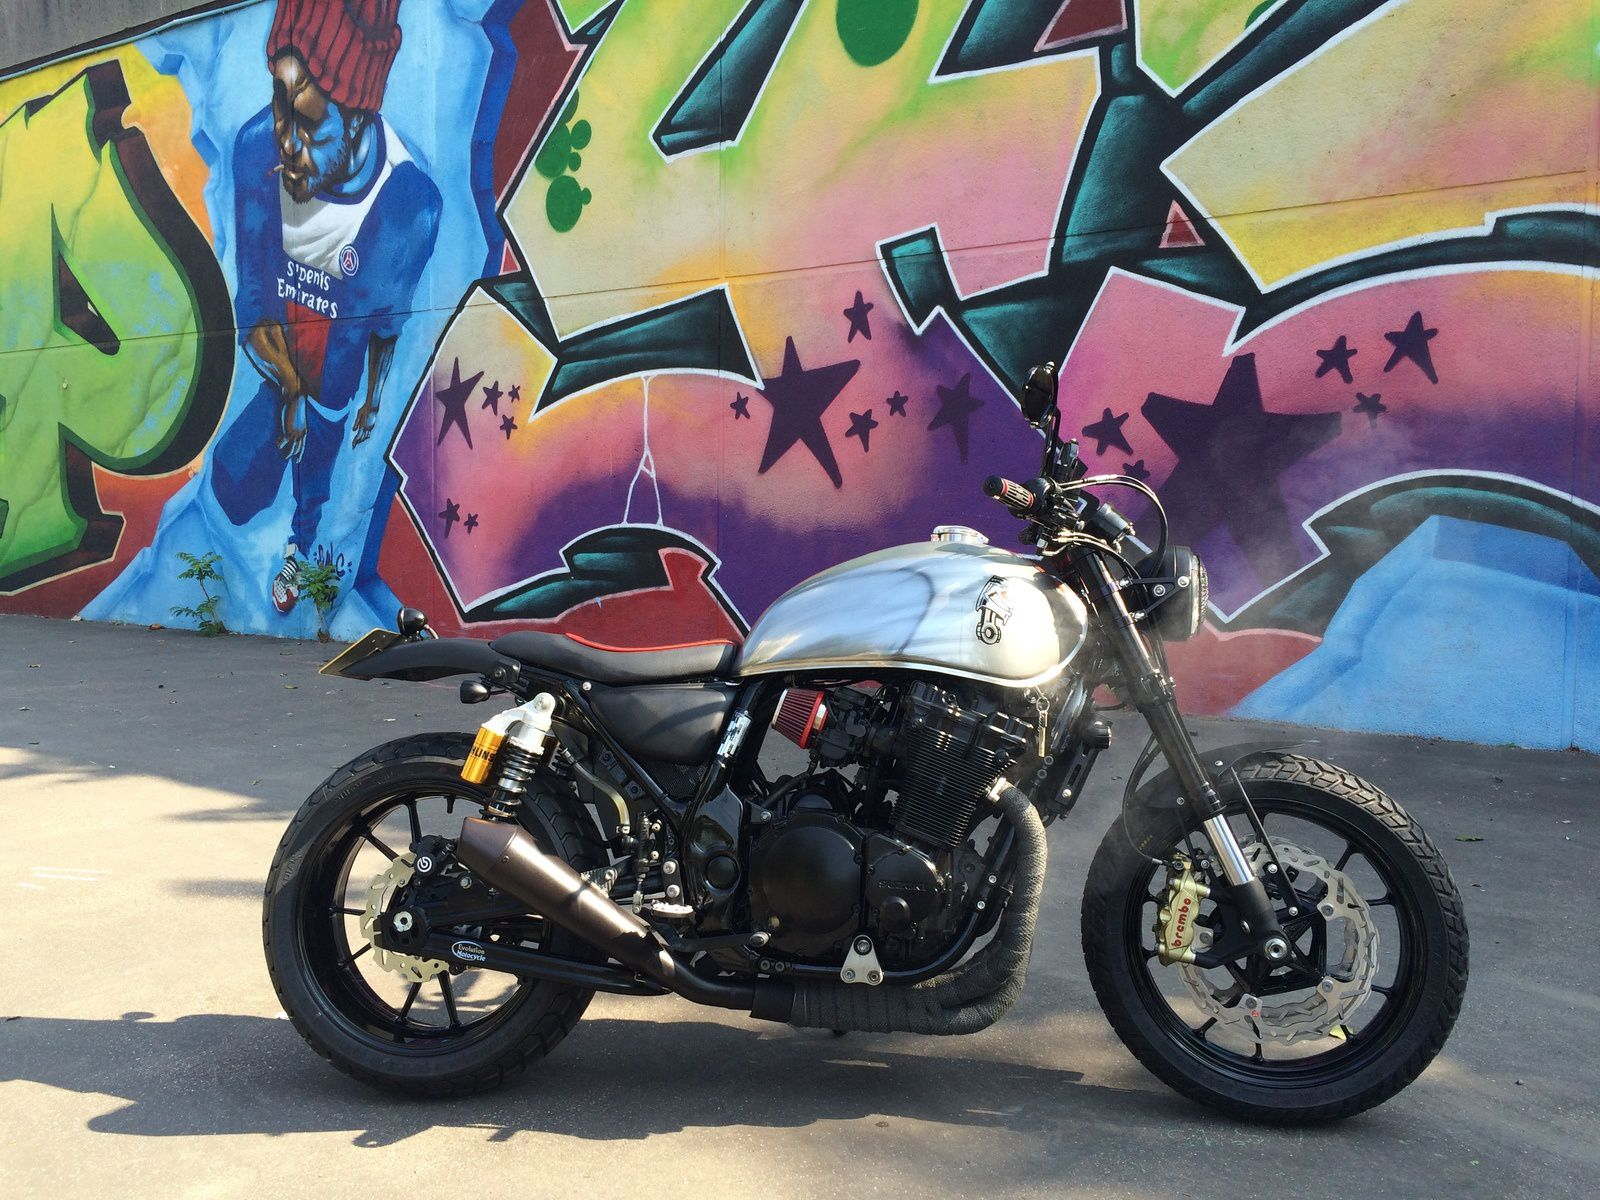 Suzuki Inazuma 1200 Scrambler Urban-jungle